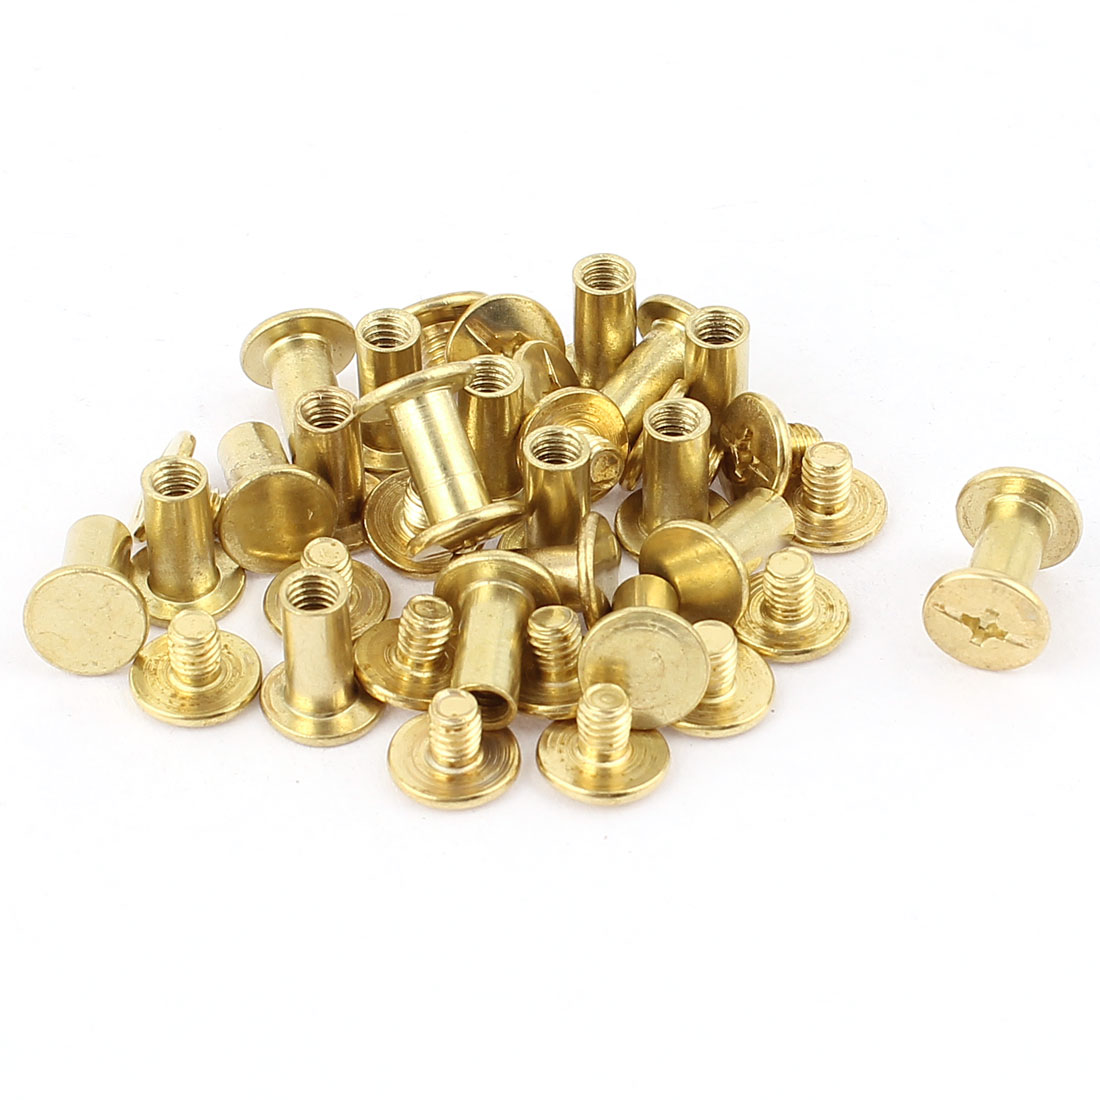 Scrapbook Leather Brass Plated Binding Chicago Screw Post 10mm 19pcs